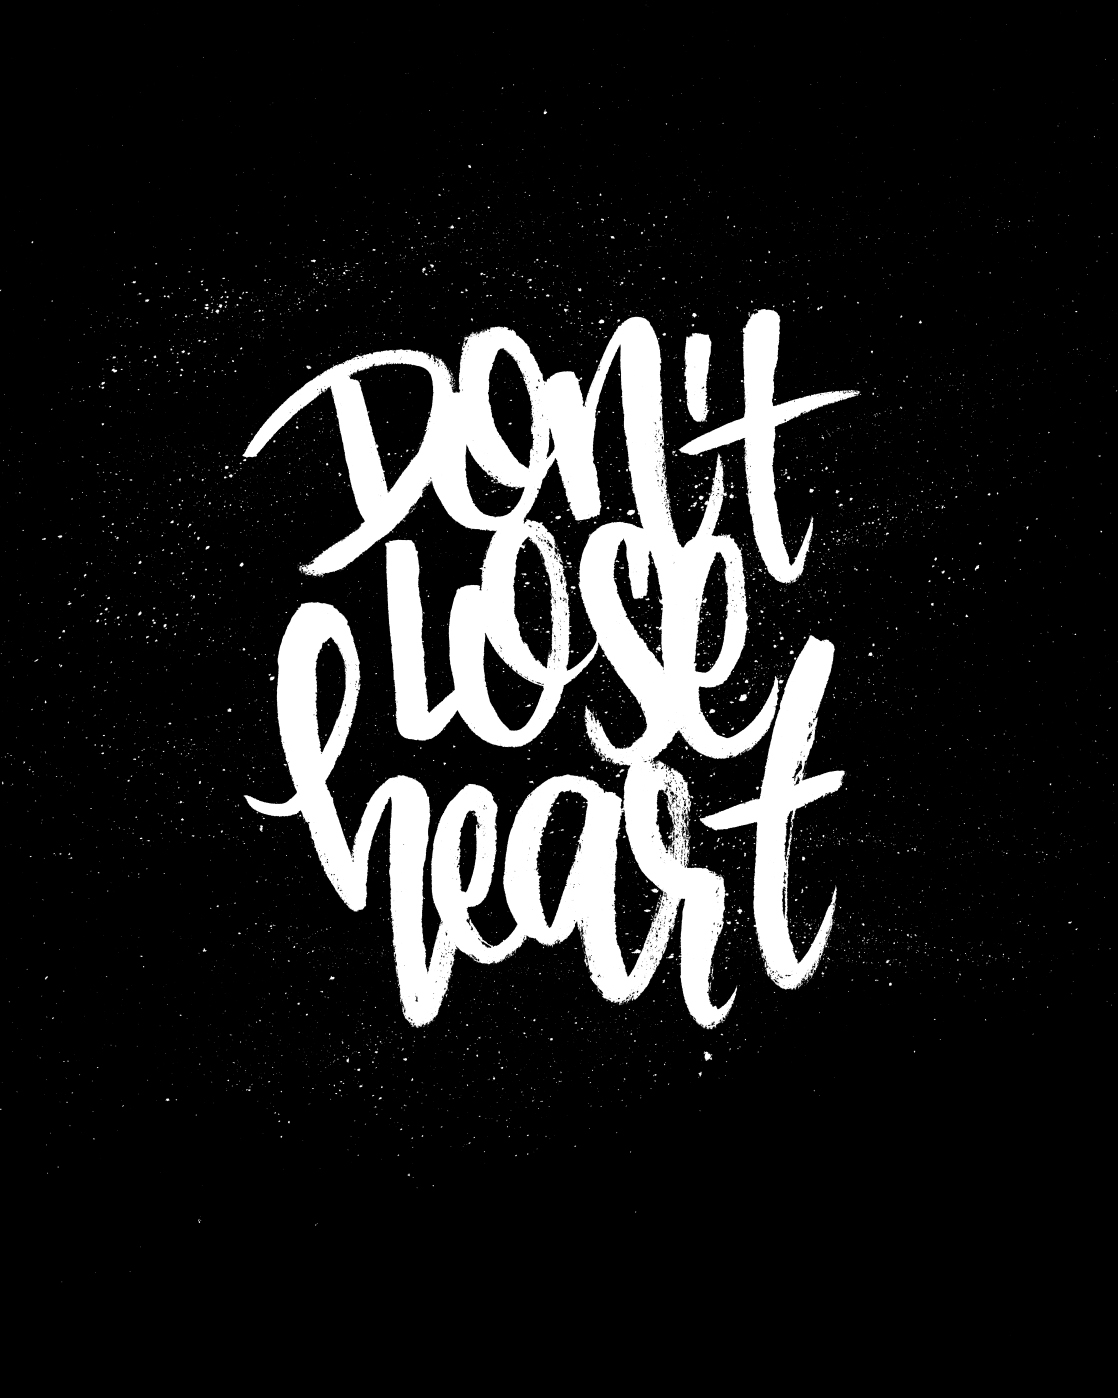 Don't Lose Heart - Lettering by Wink & Wonder